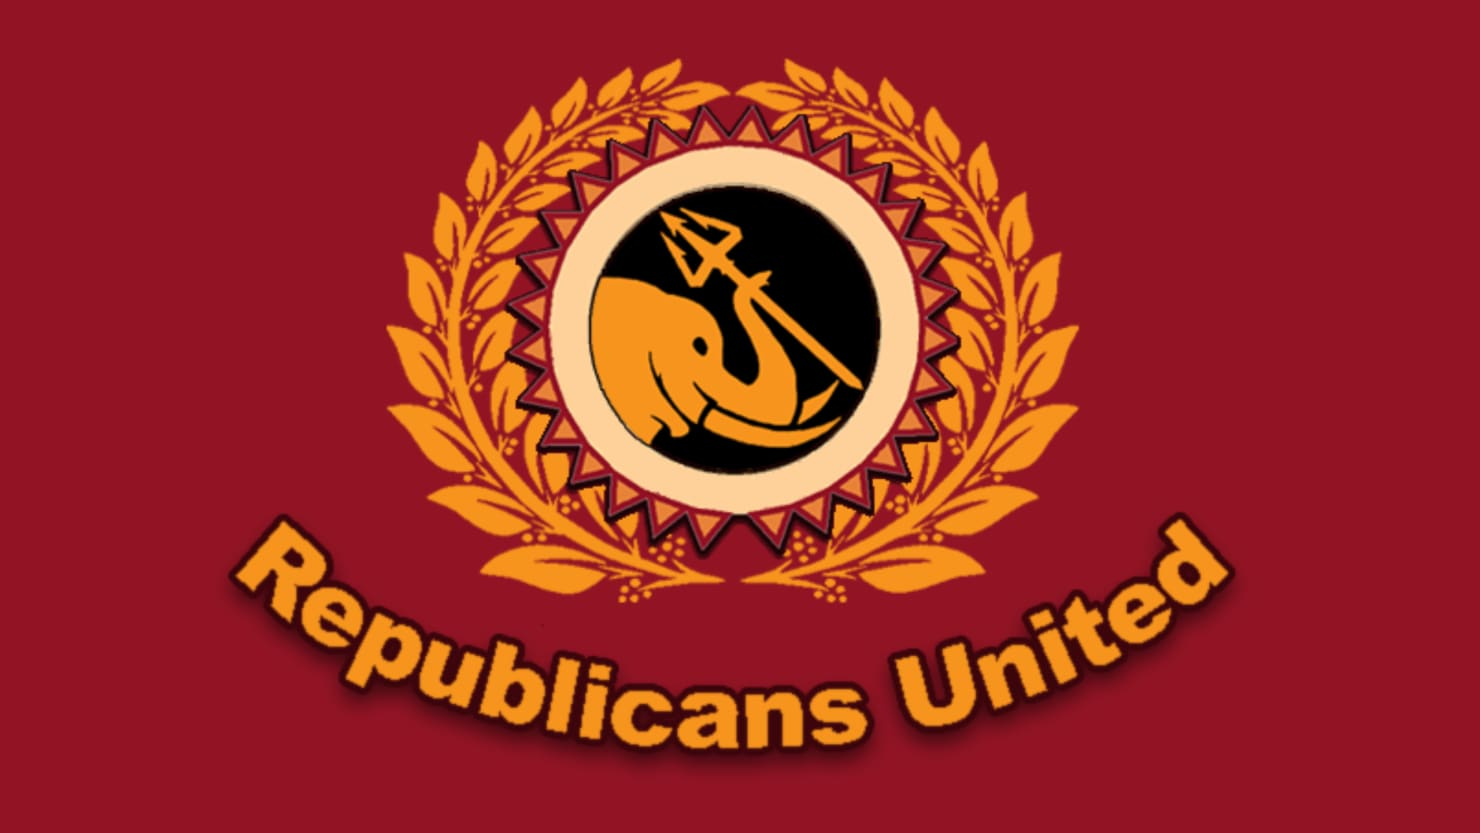 Conservative Club Leaders at Arizona State University Under Fire for Racist, Anti-Gay Remarks in Leaked Messages